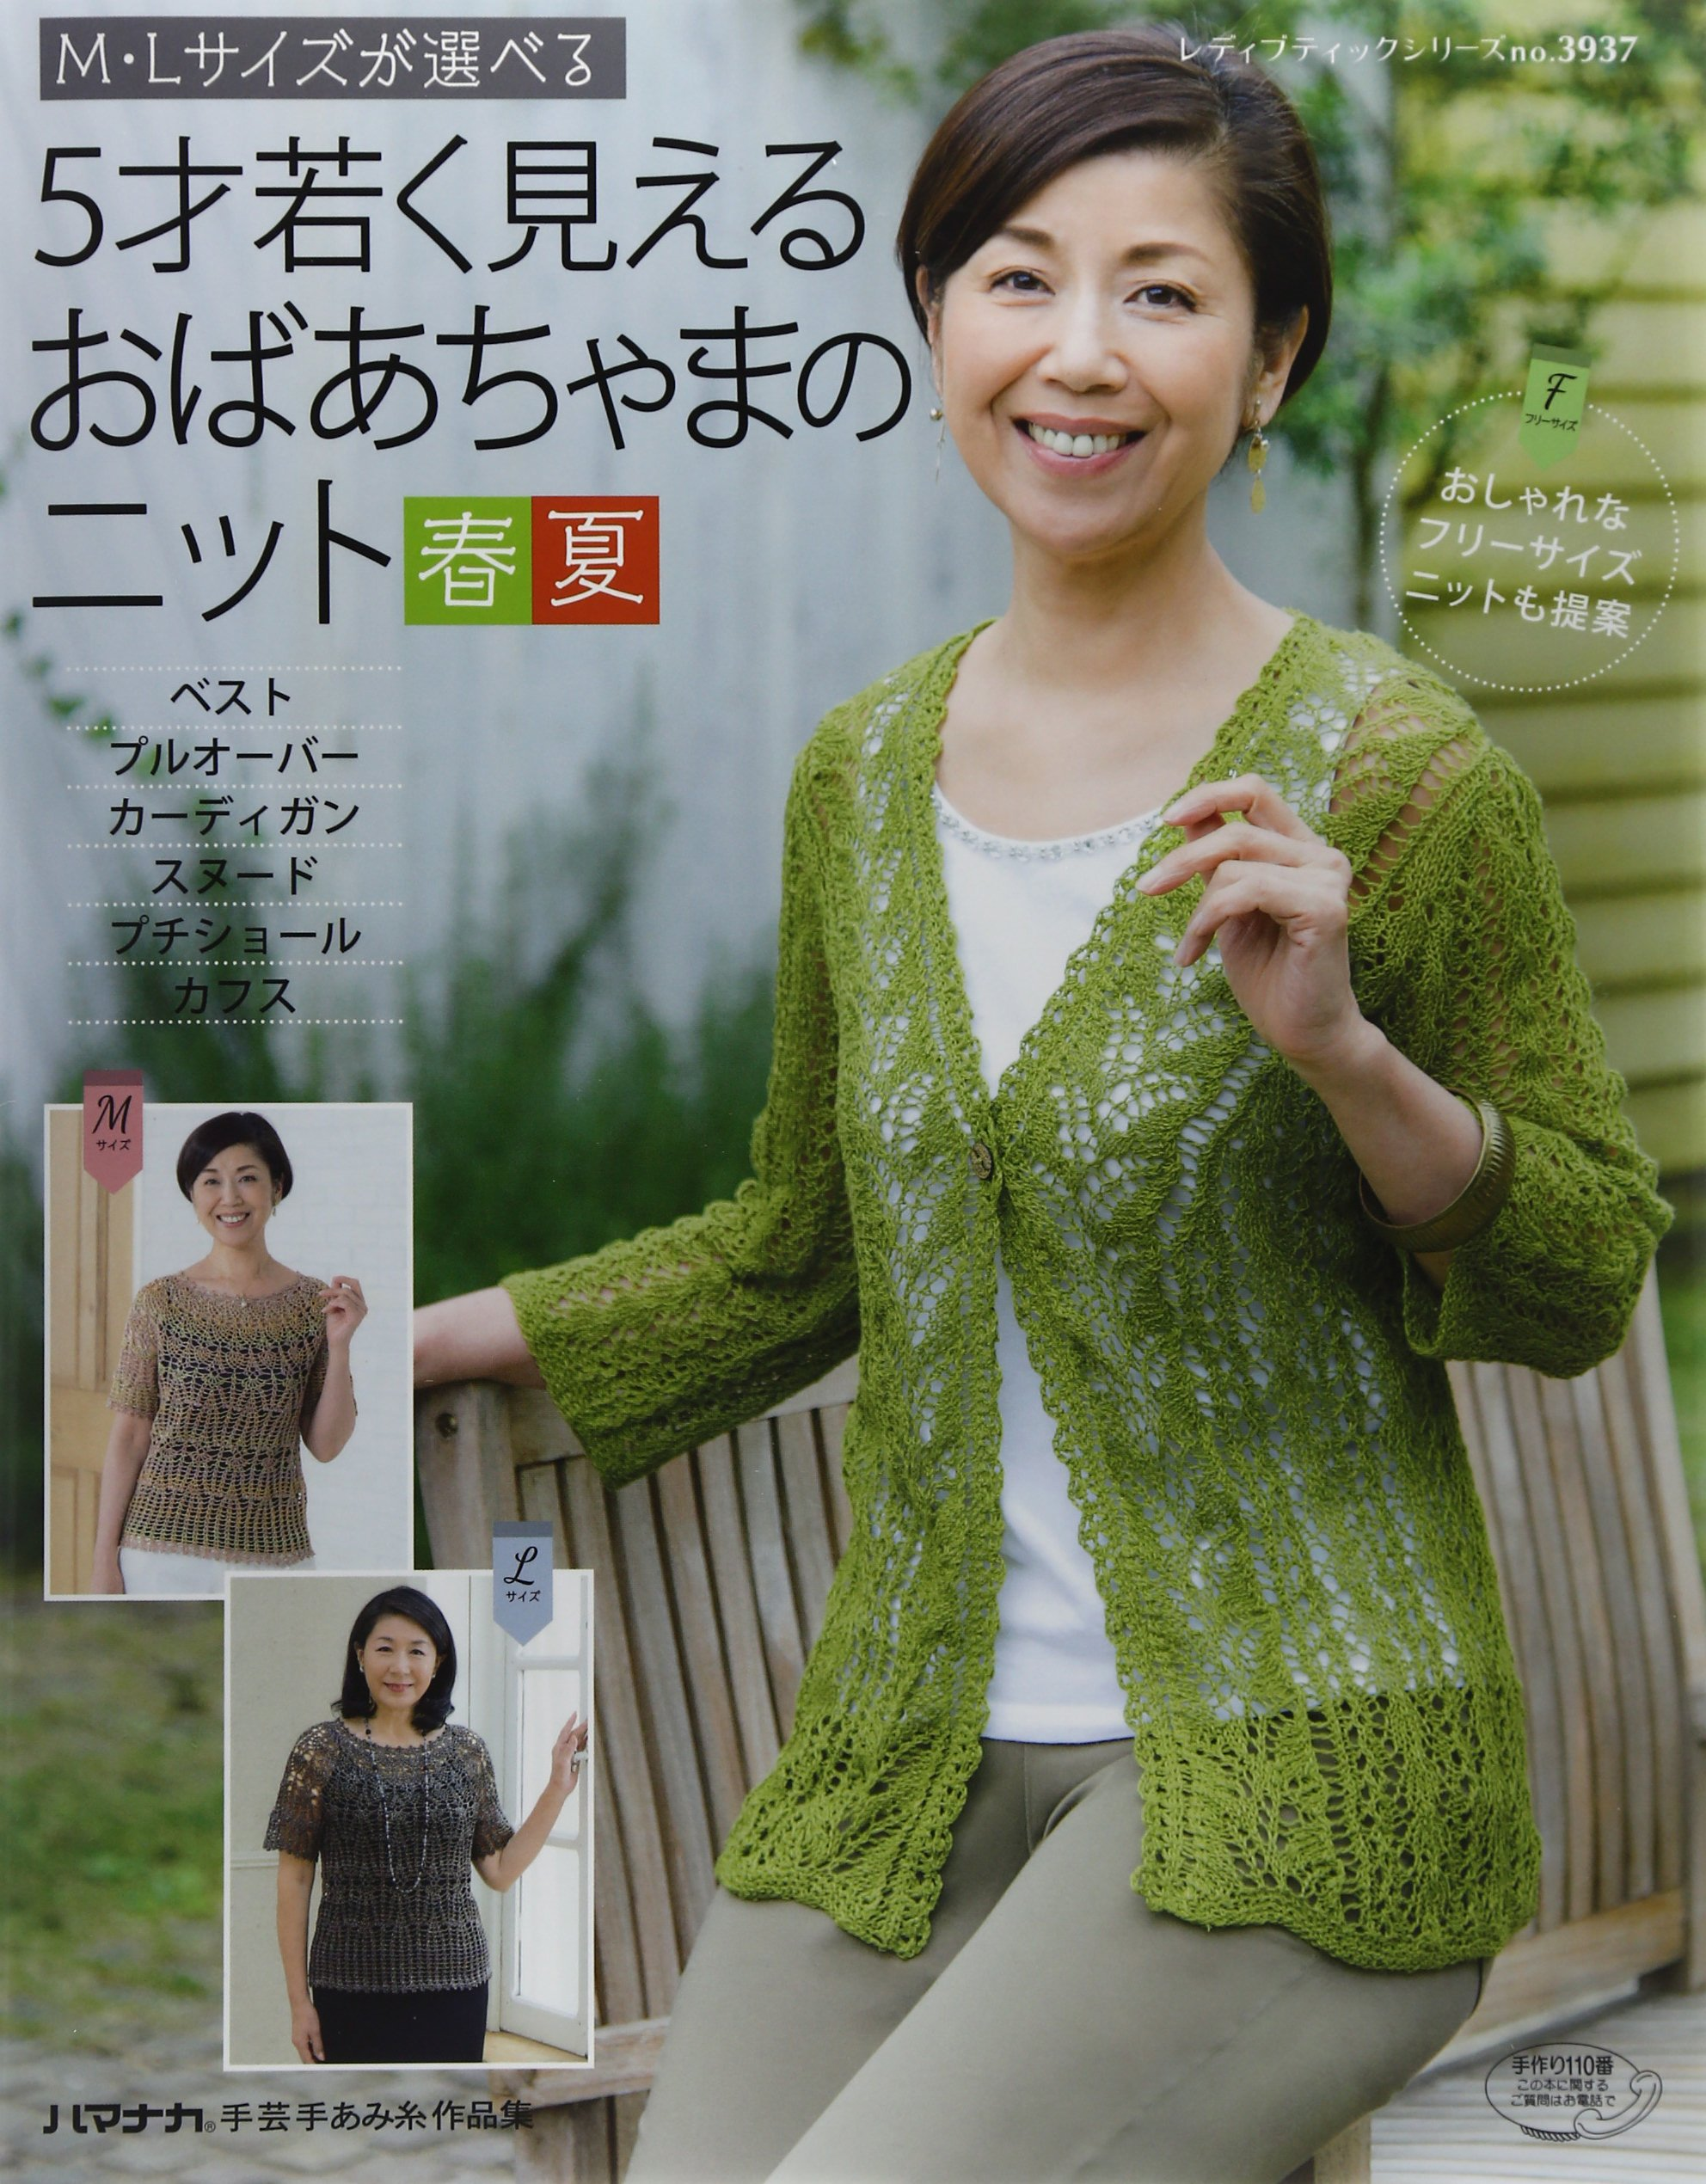 Knit spring and summer look Grandmother Chama Obama